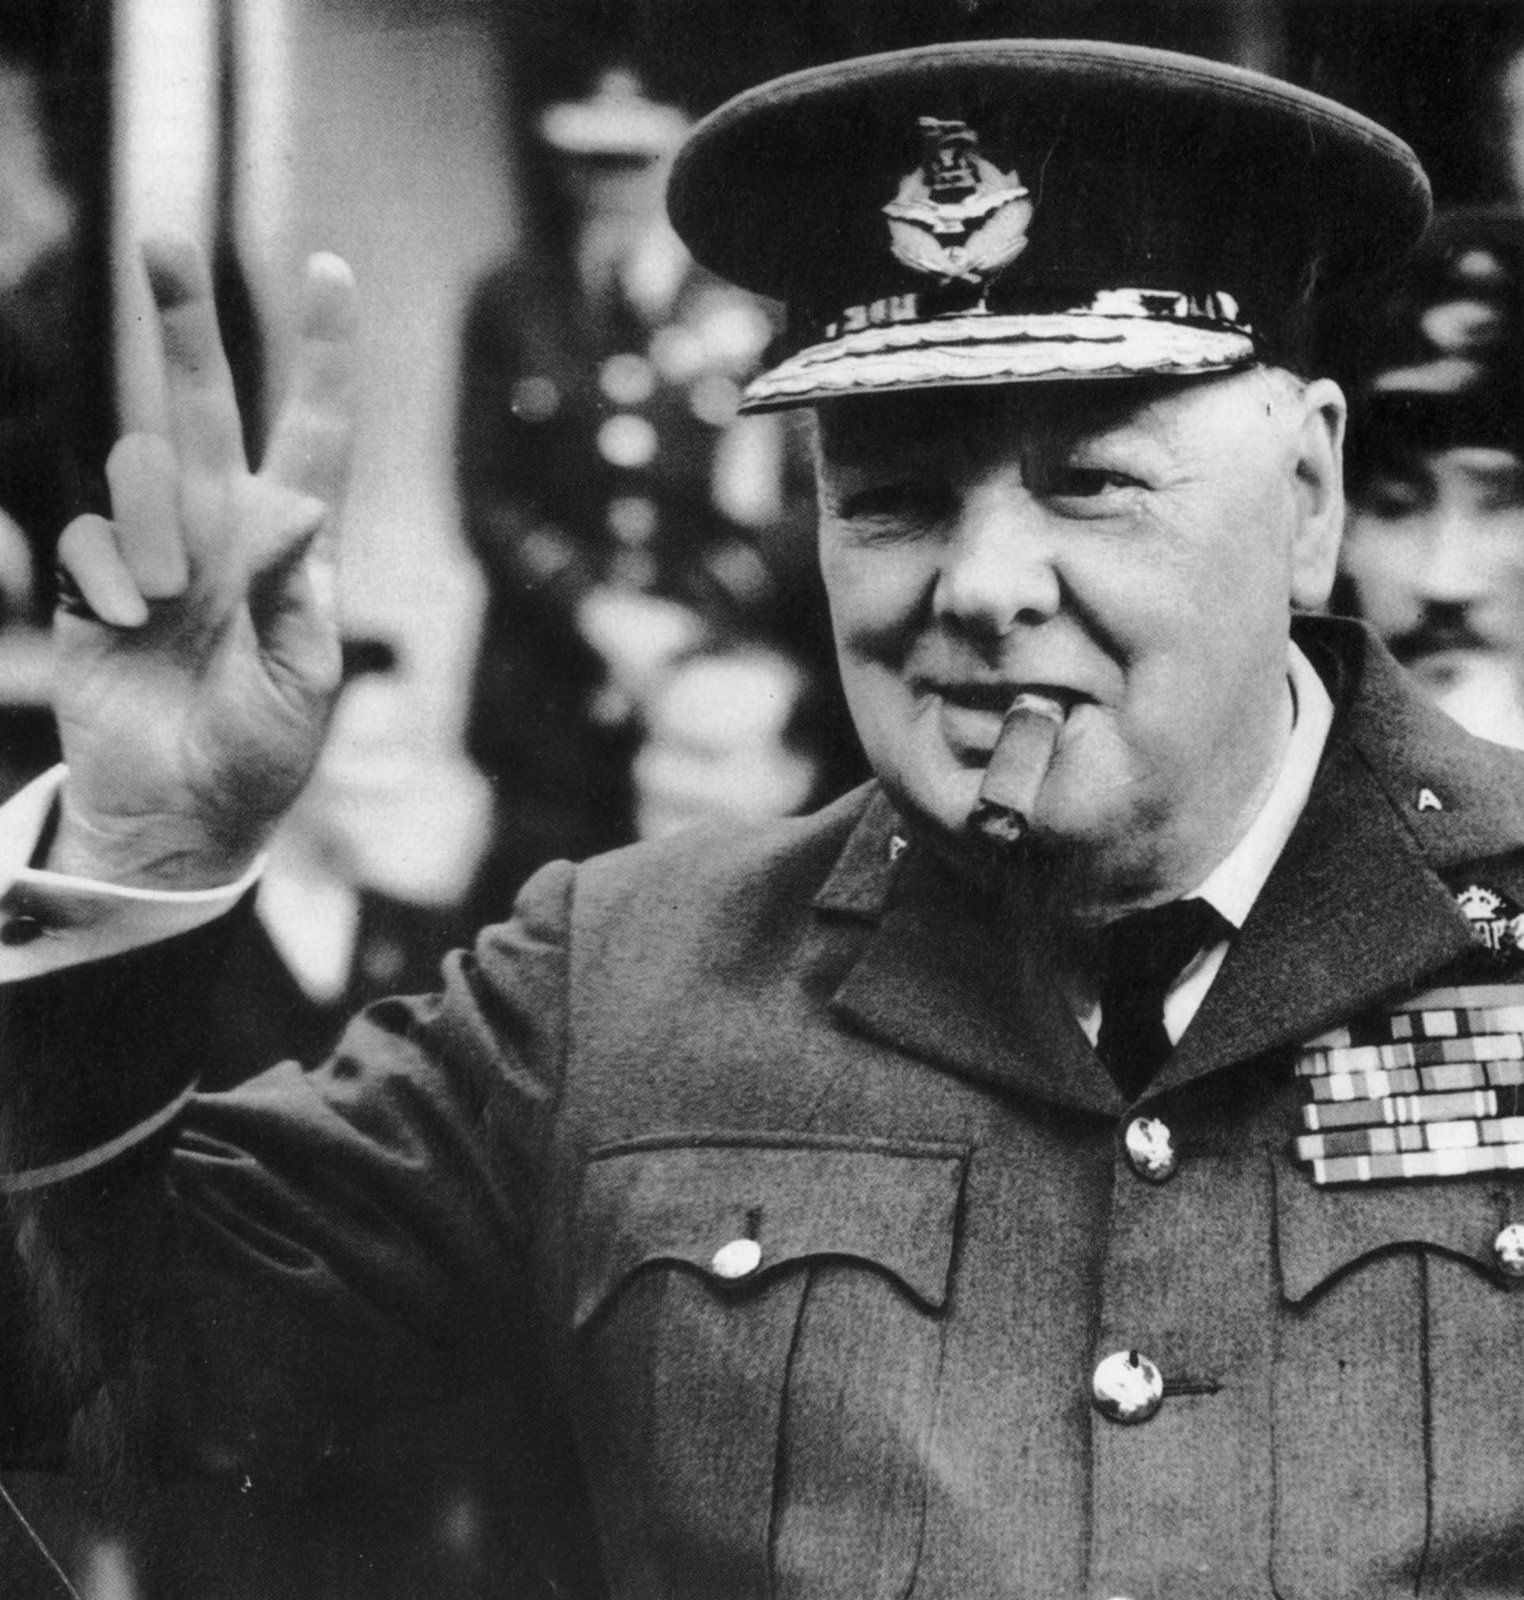 Winston Churchill in Military Garb Shows V-for-Victory Salute